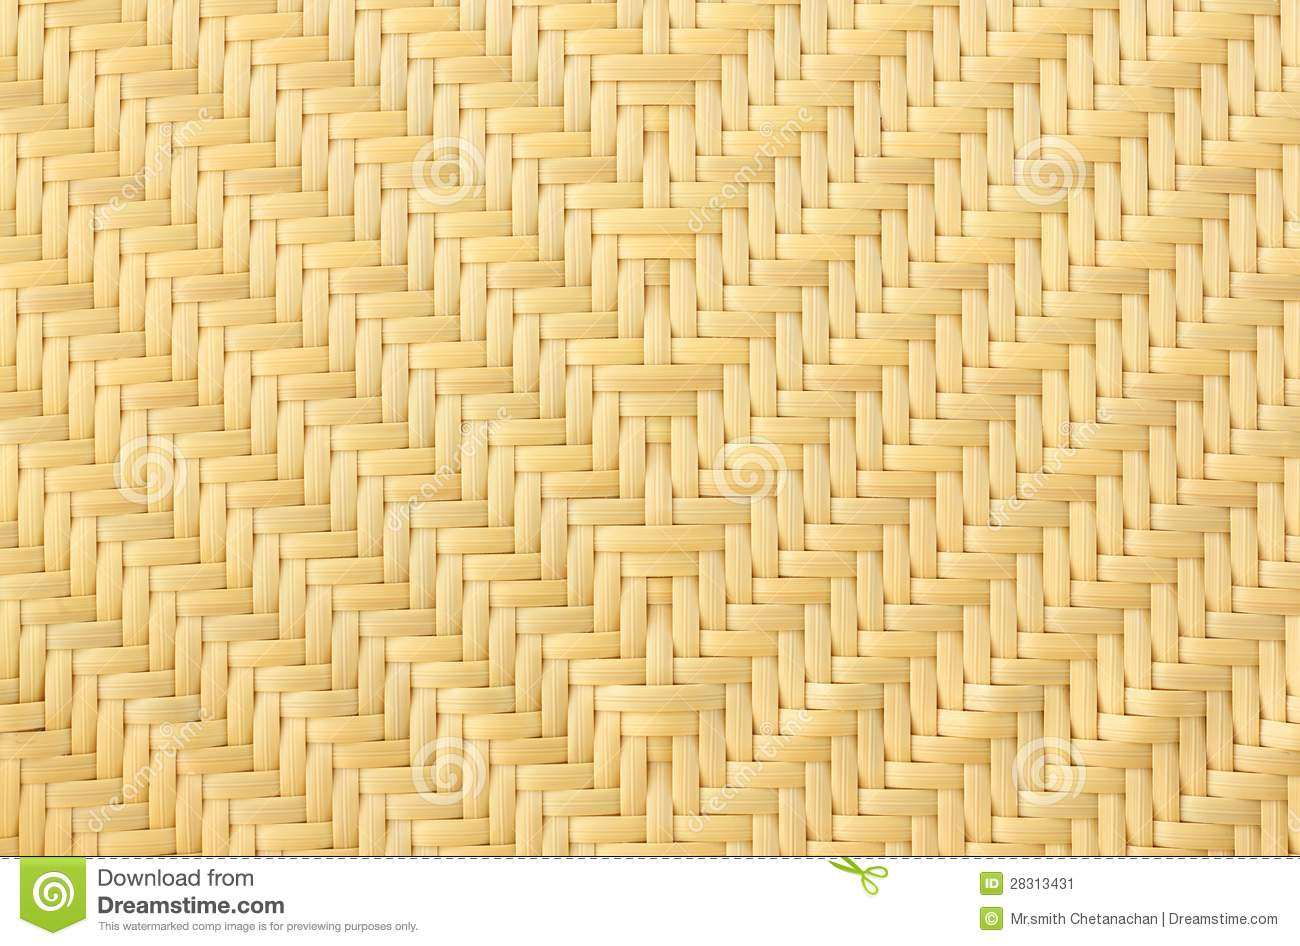 bamboo rattan chair swing vector texture stock image. image of bamboo, rustic - 28313431